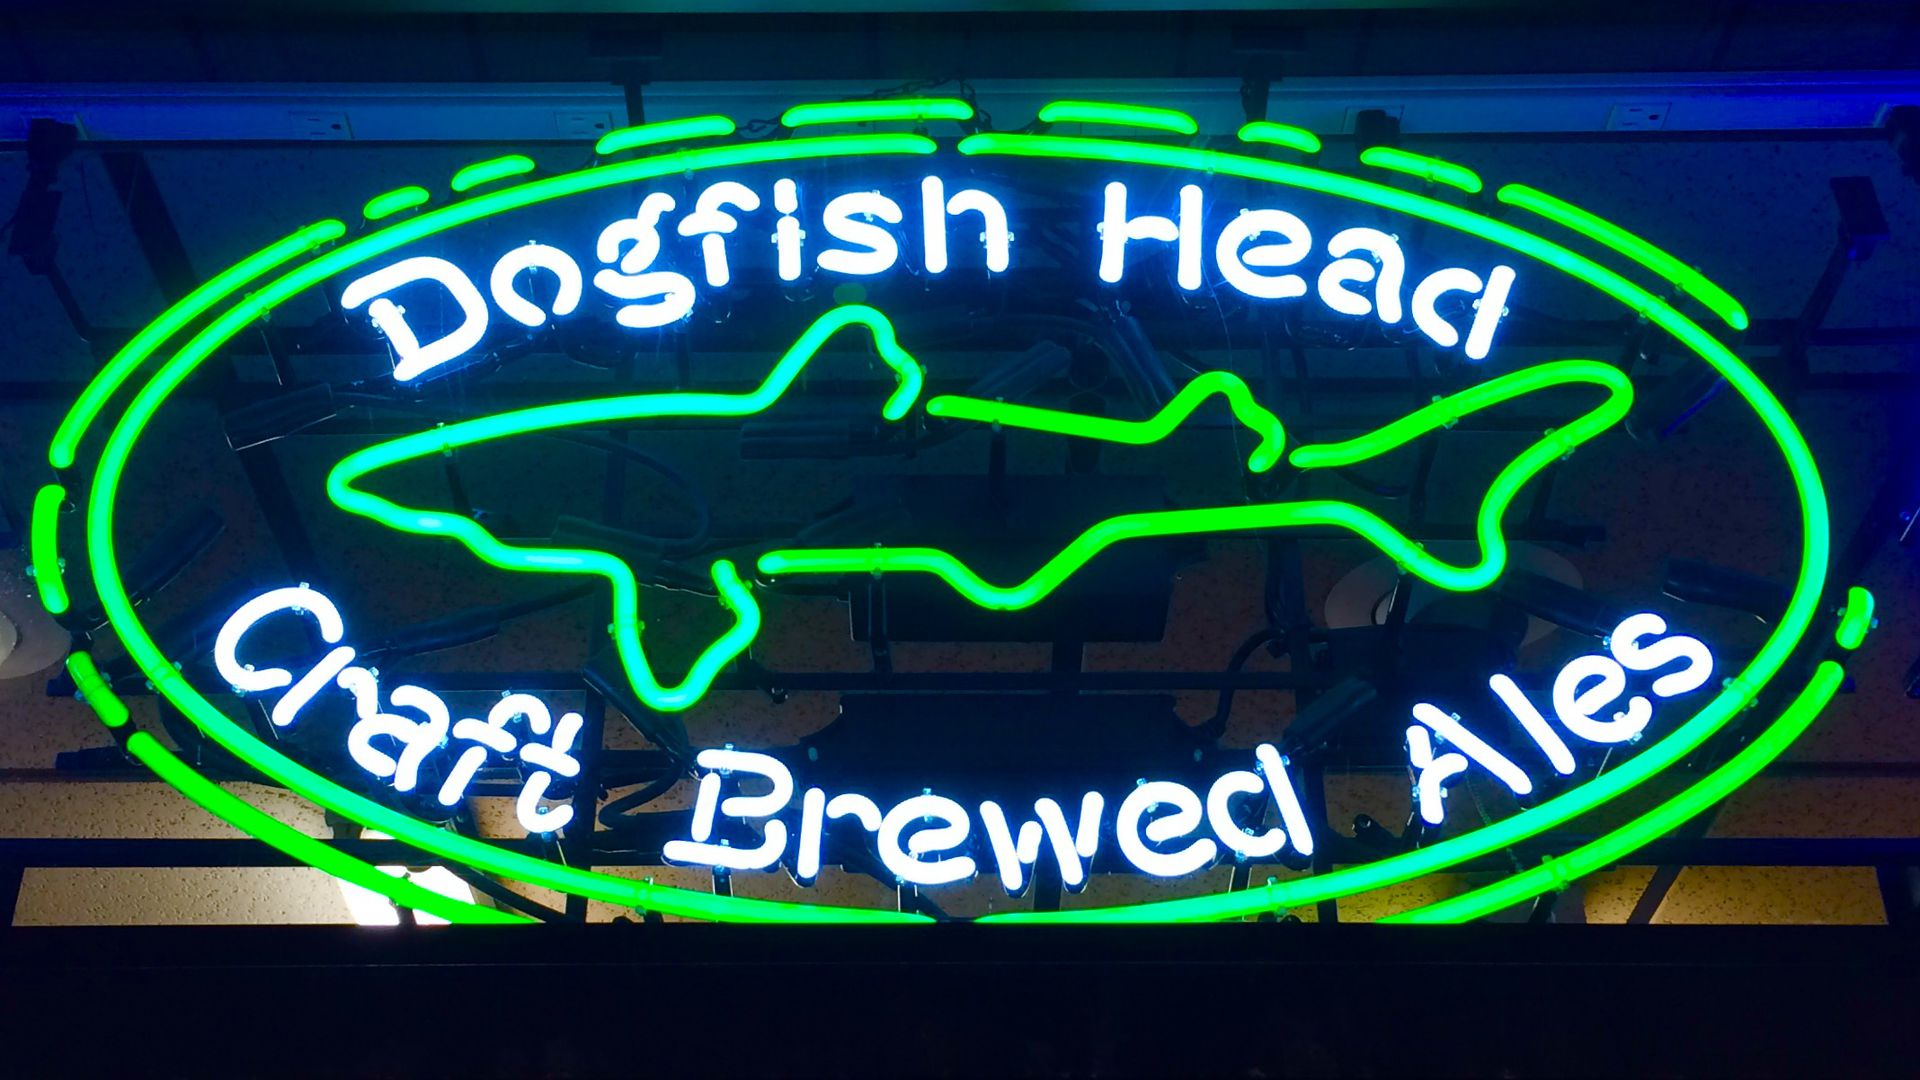 Dogfish Head Brewery neon sign